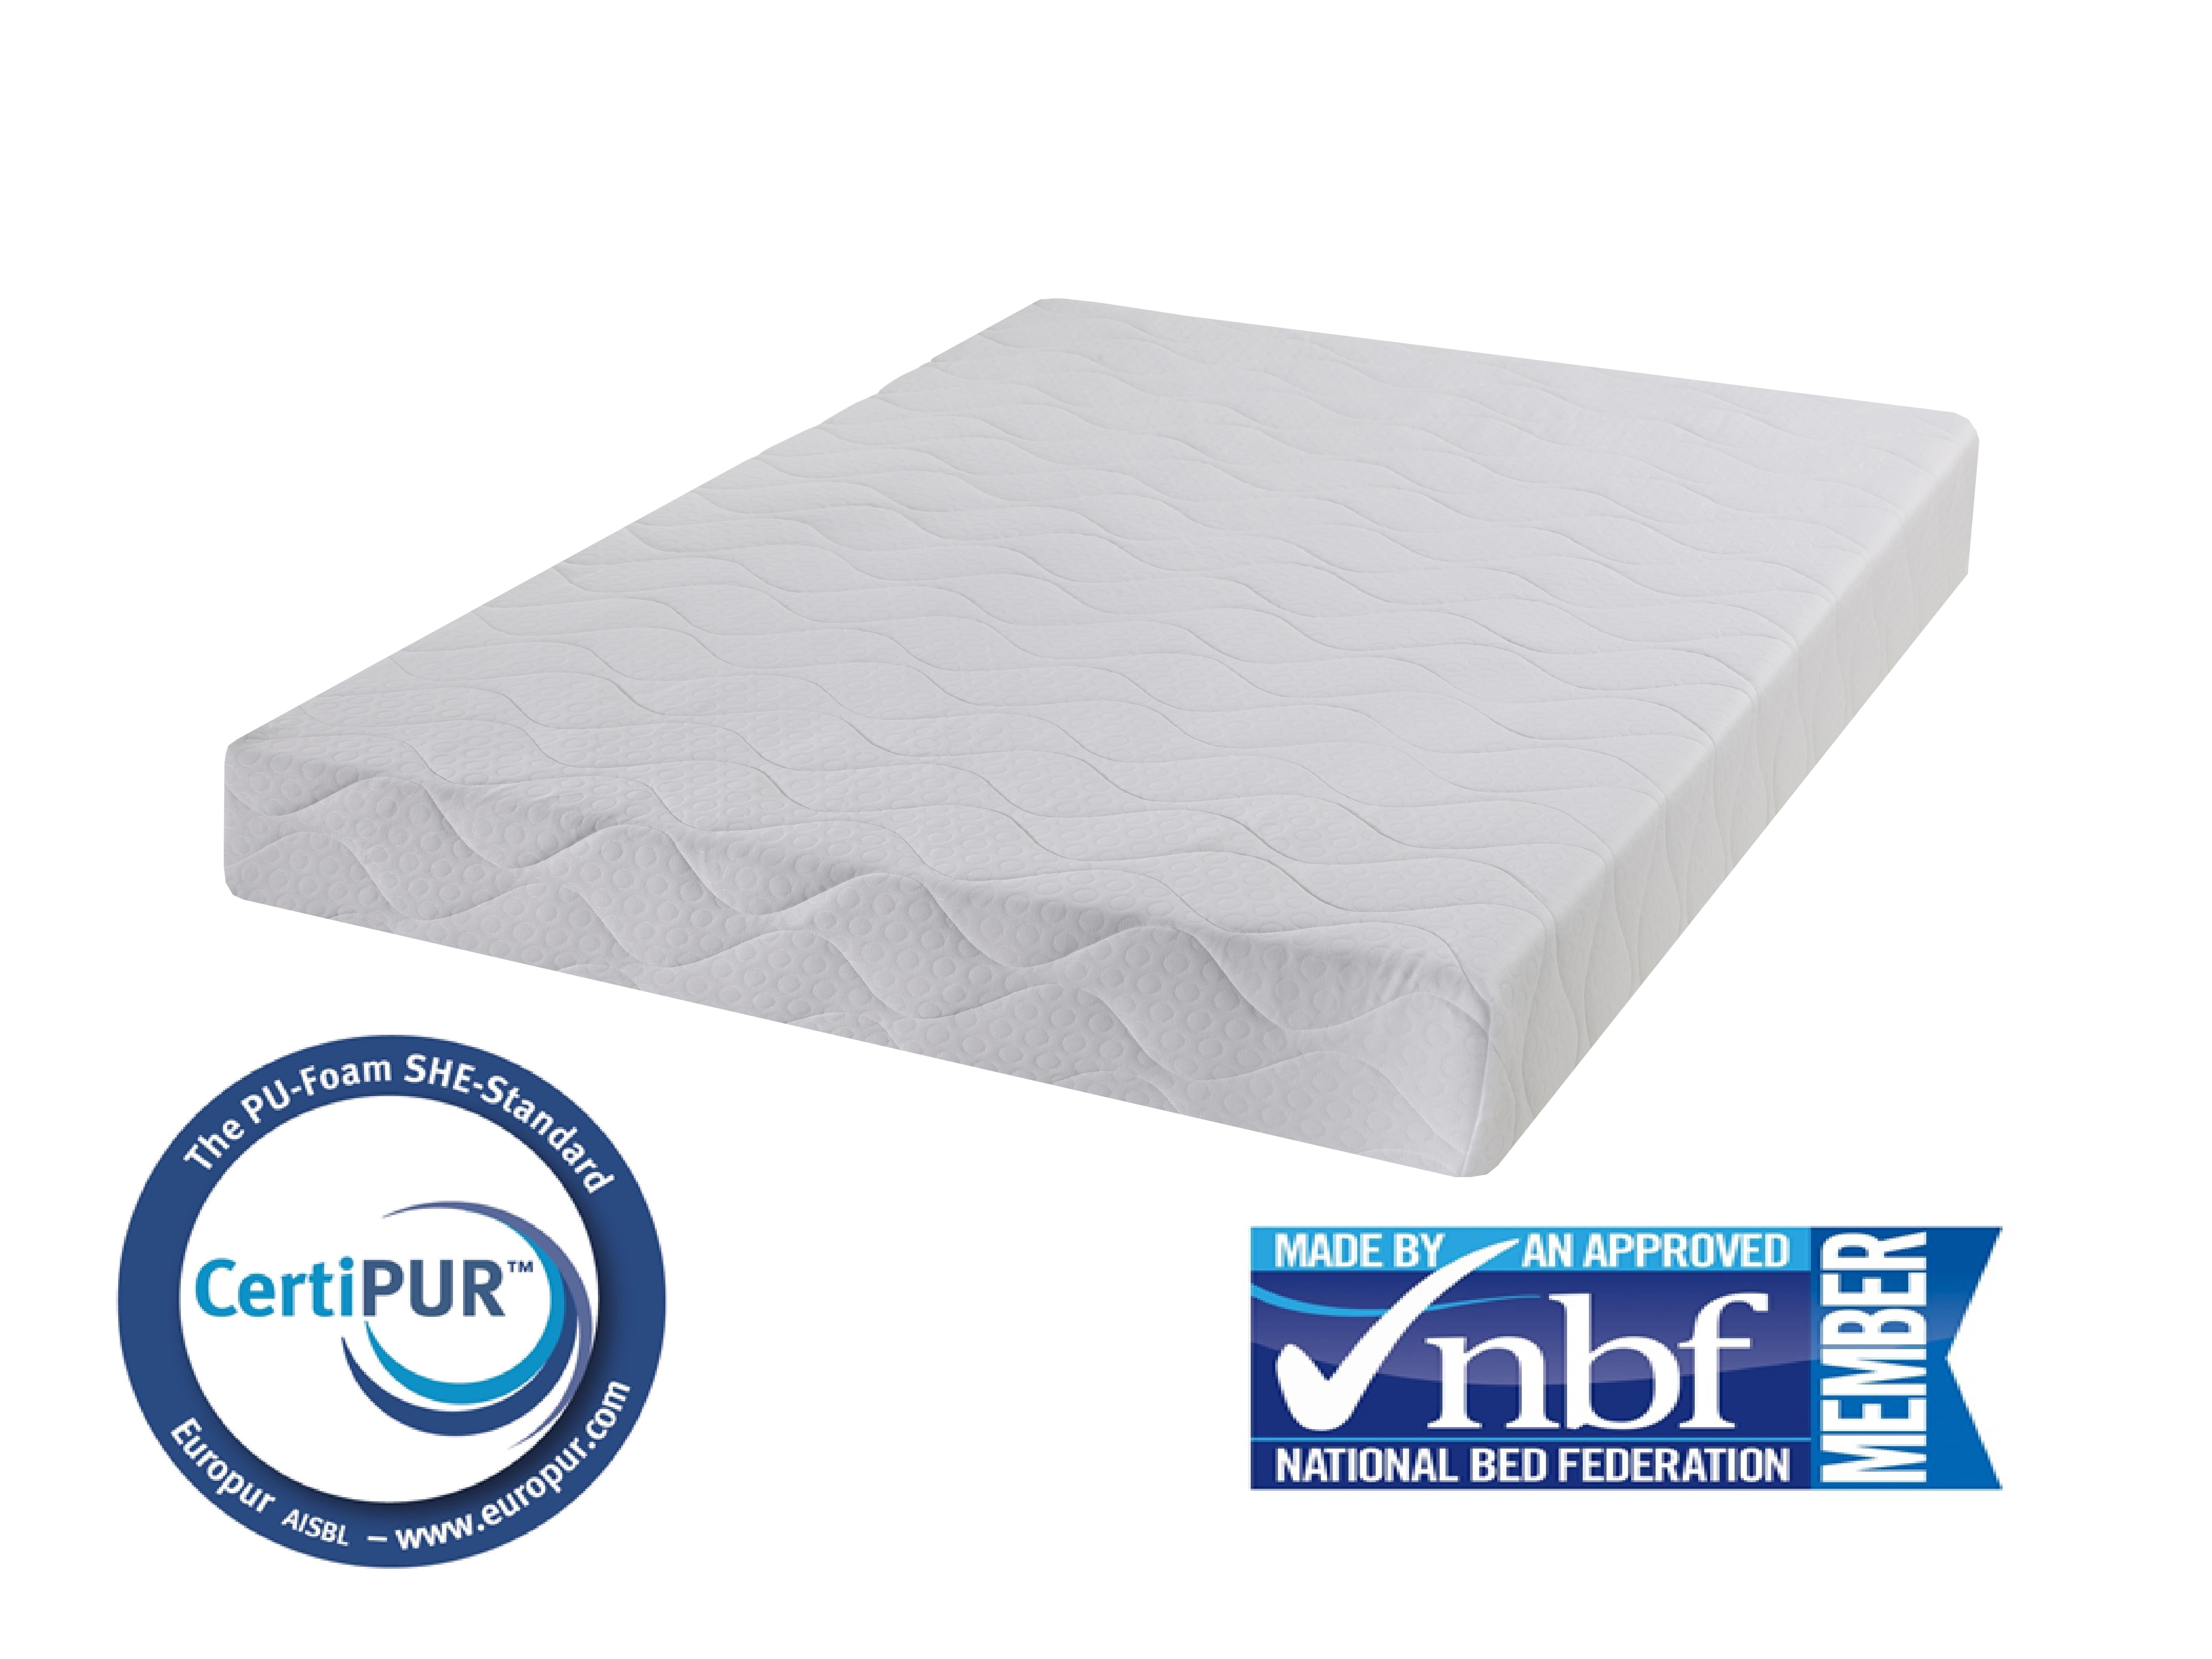 Single Pocket Sprung Memory Foam Mattress Orthopaedic Pocket Sprung Memory Foam Mattress The Cheapest Mattress